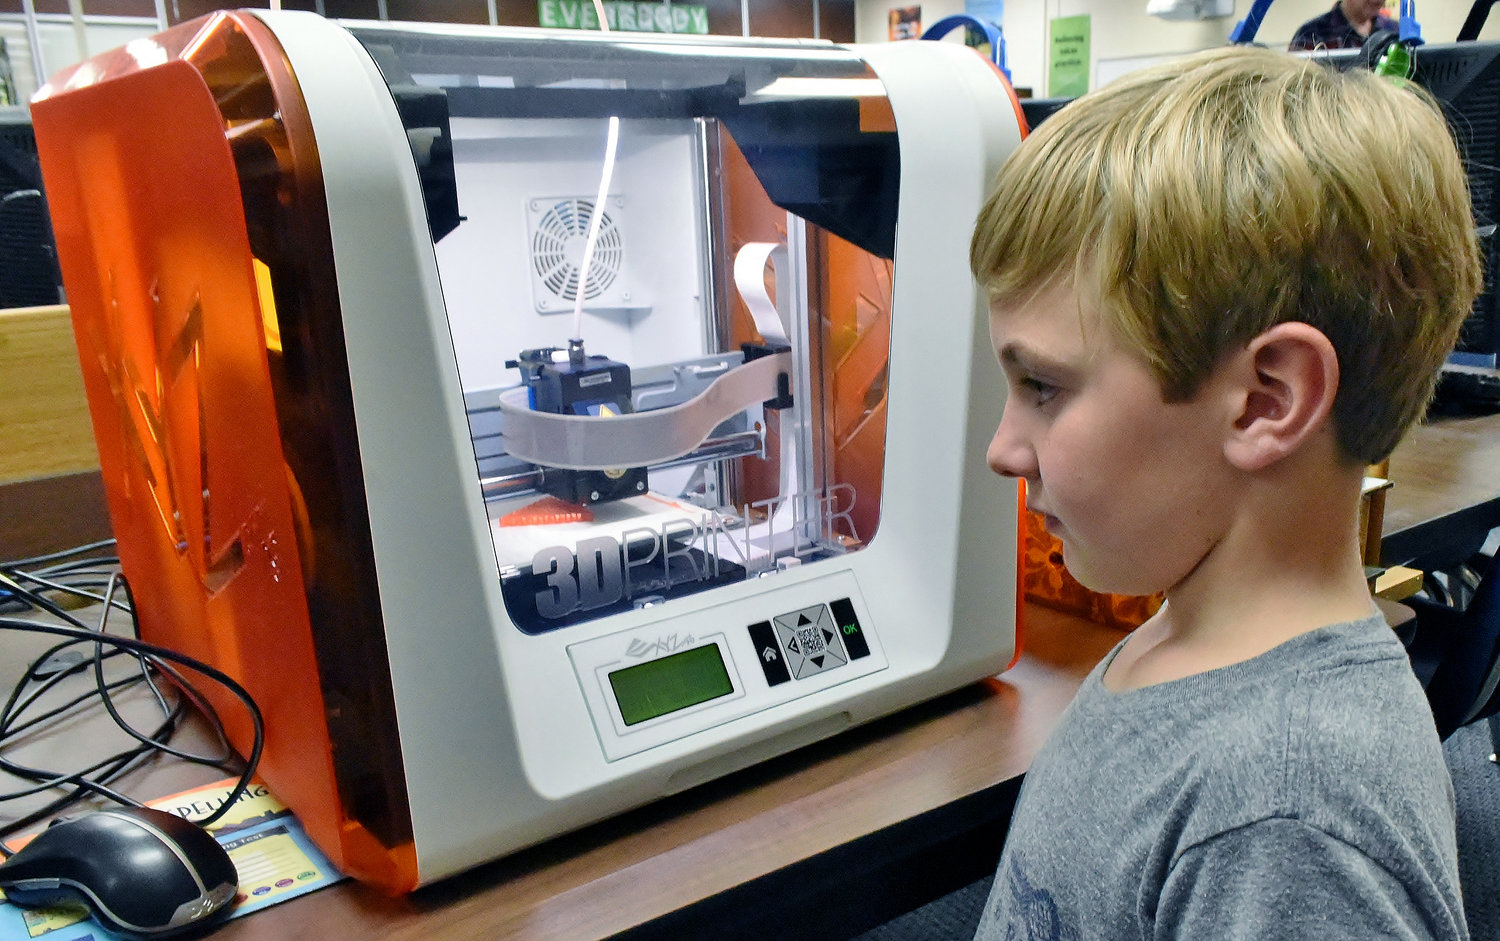 Hamilton Crossing Elementary fourth-grader Emery Holt watches as the school's 3-D printer produces a tactile 3-D symbol.